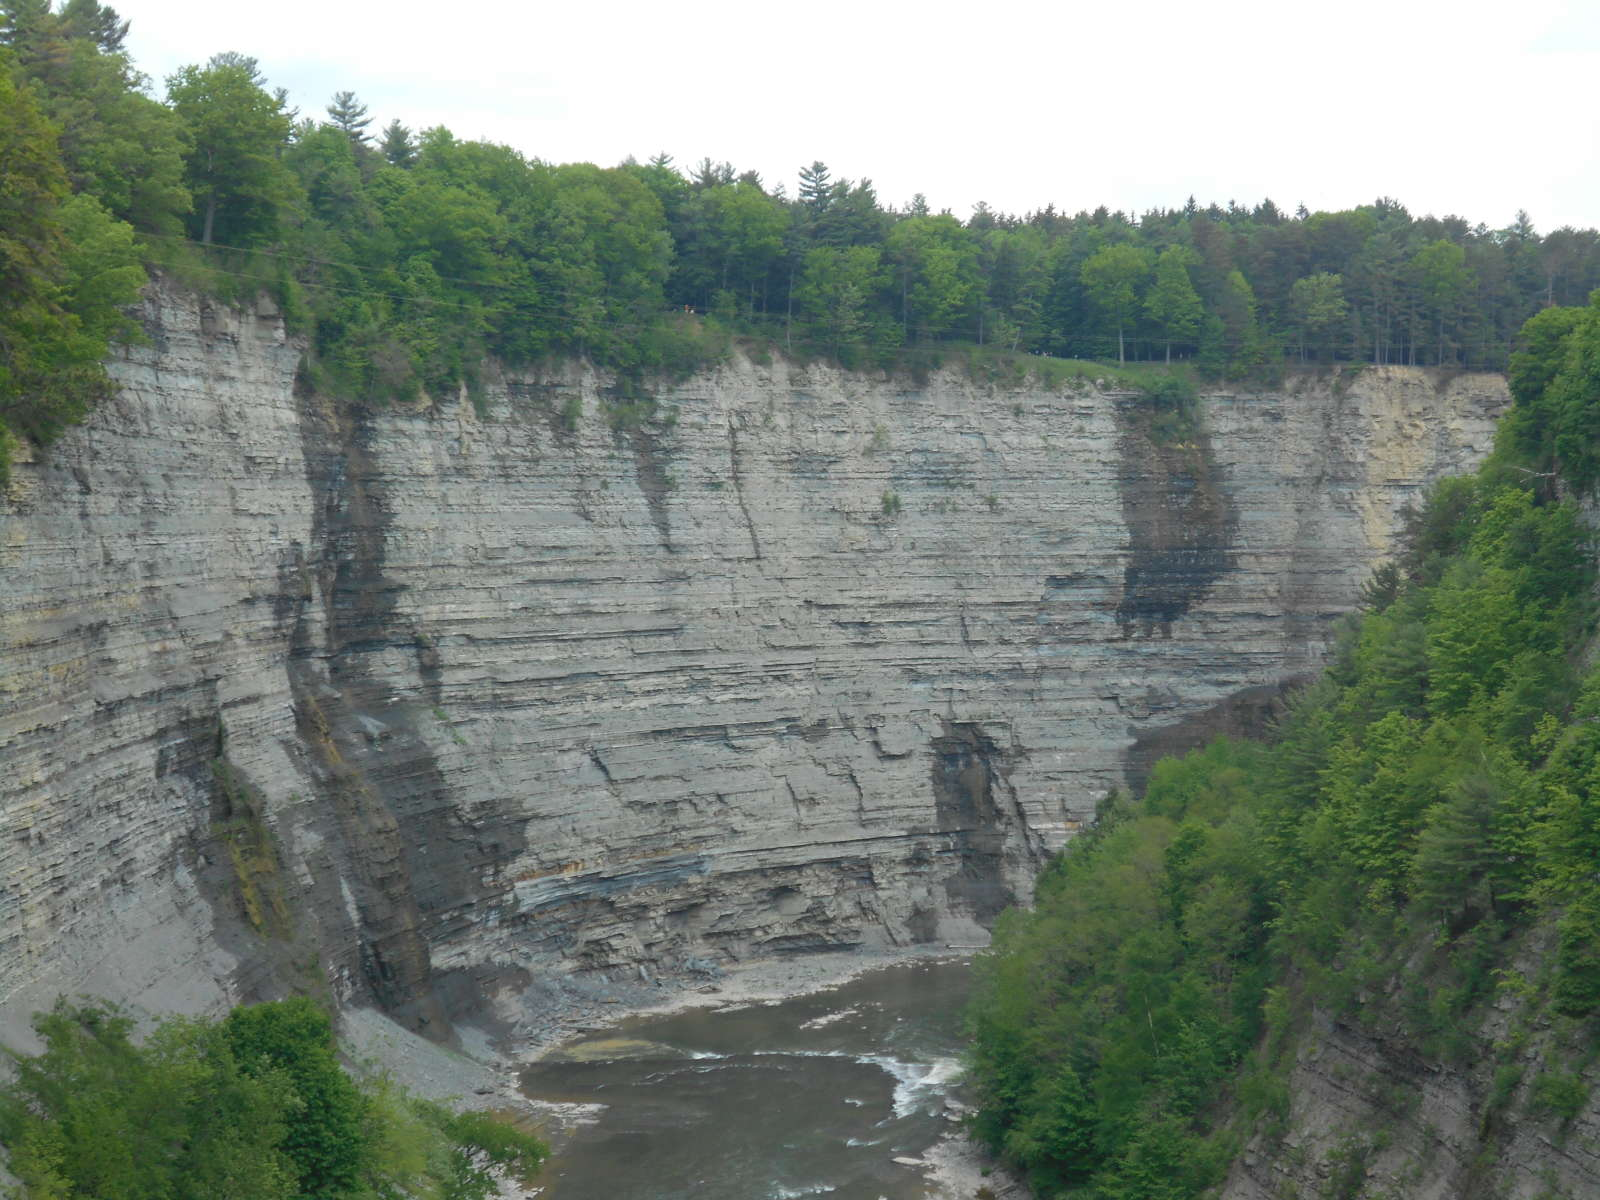 letchworth state park Wyoming county - home of beautiful letchworth state park and the perfect place to enjoy a year-round adventure.